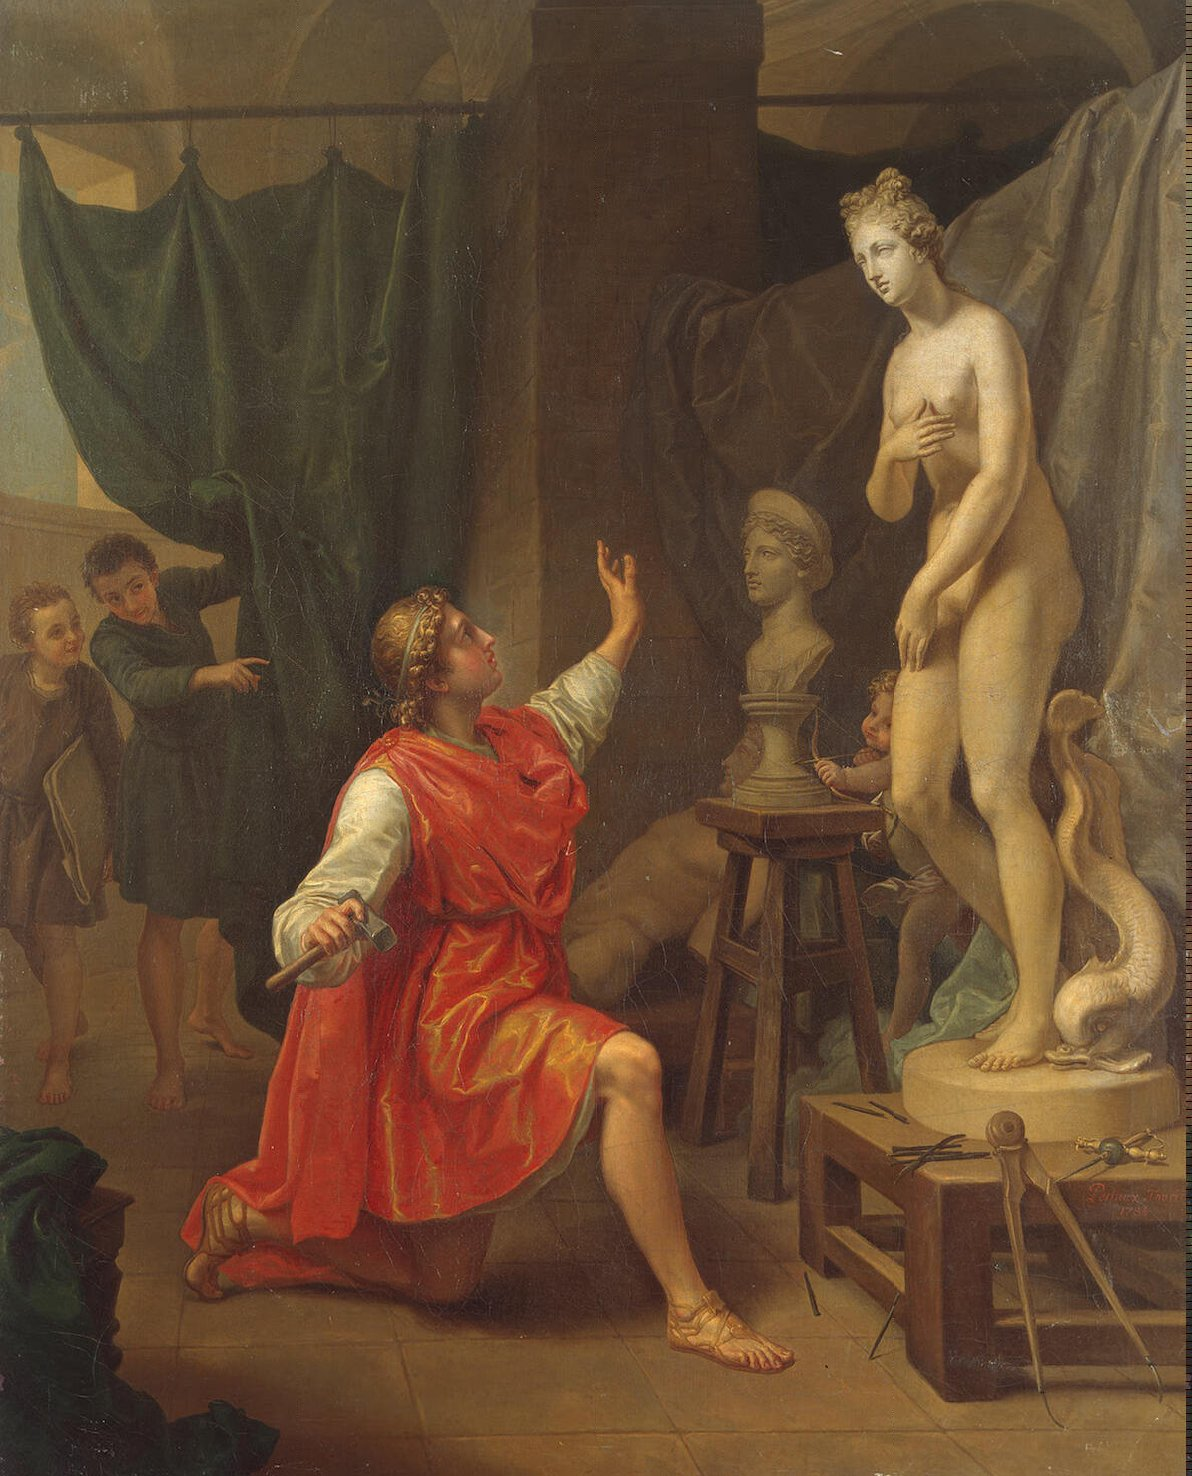 Pygmalion and Galatea depicted in a painting by Laurent Pécheux from the 1700s.